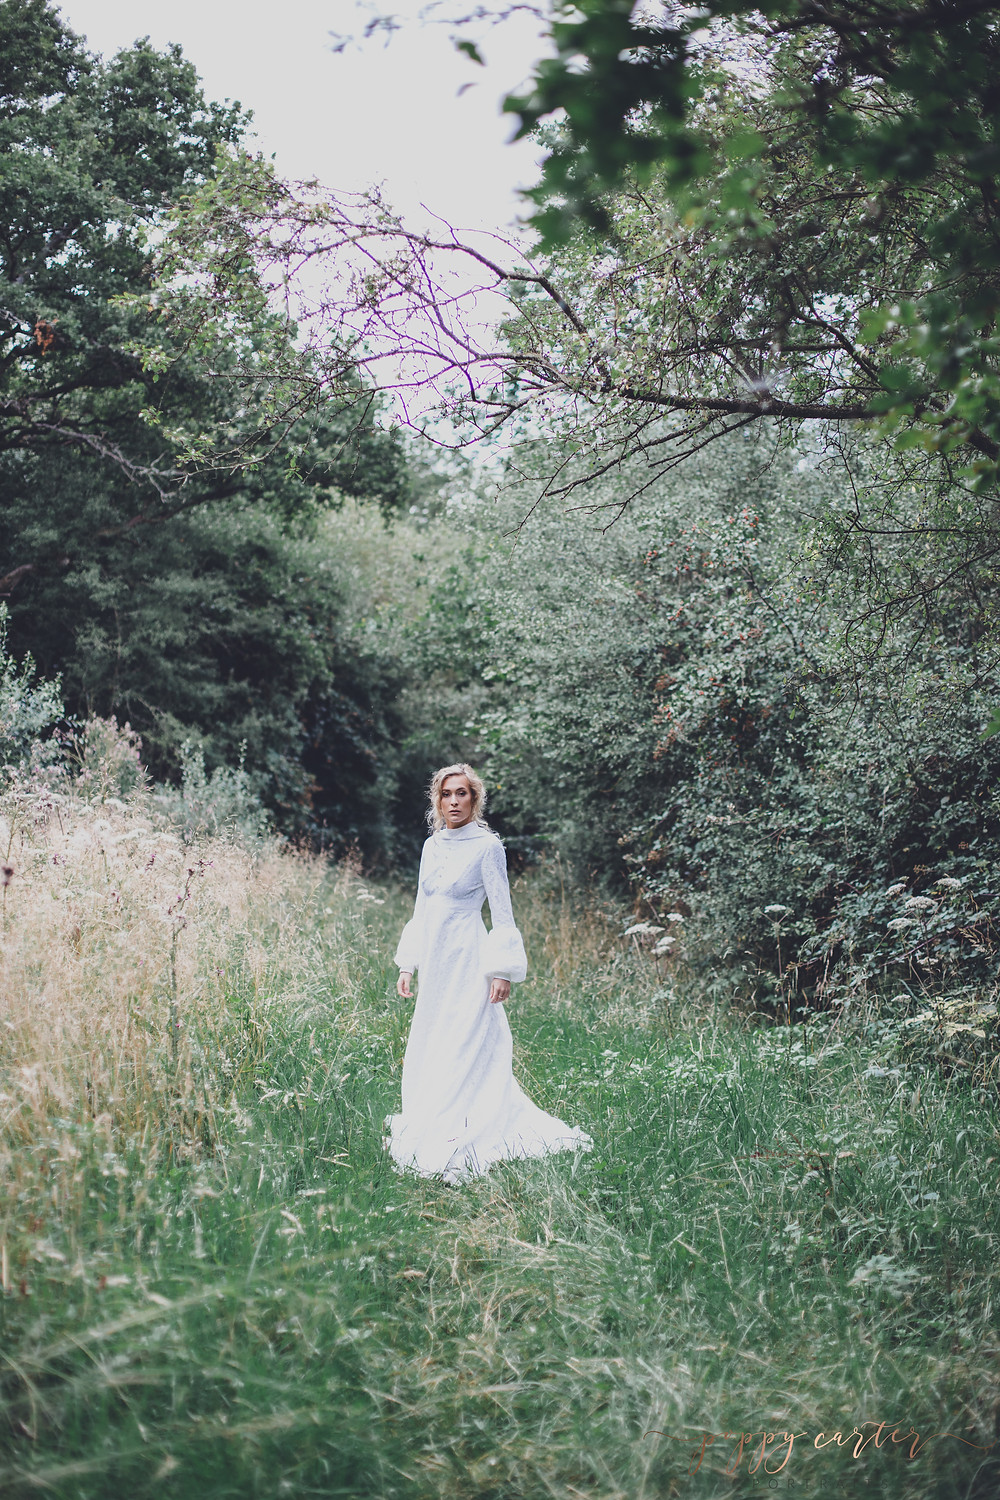 Poppy Carter Portraits Alternative Wedding Photography Buckinghamshire Aylesbury Bicester Oxford Cotswolds